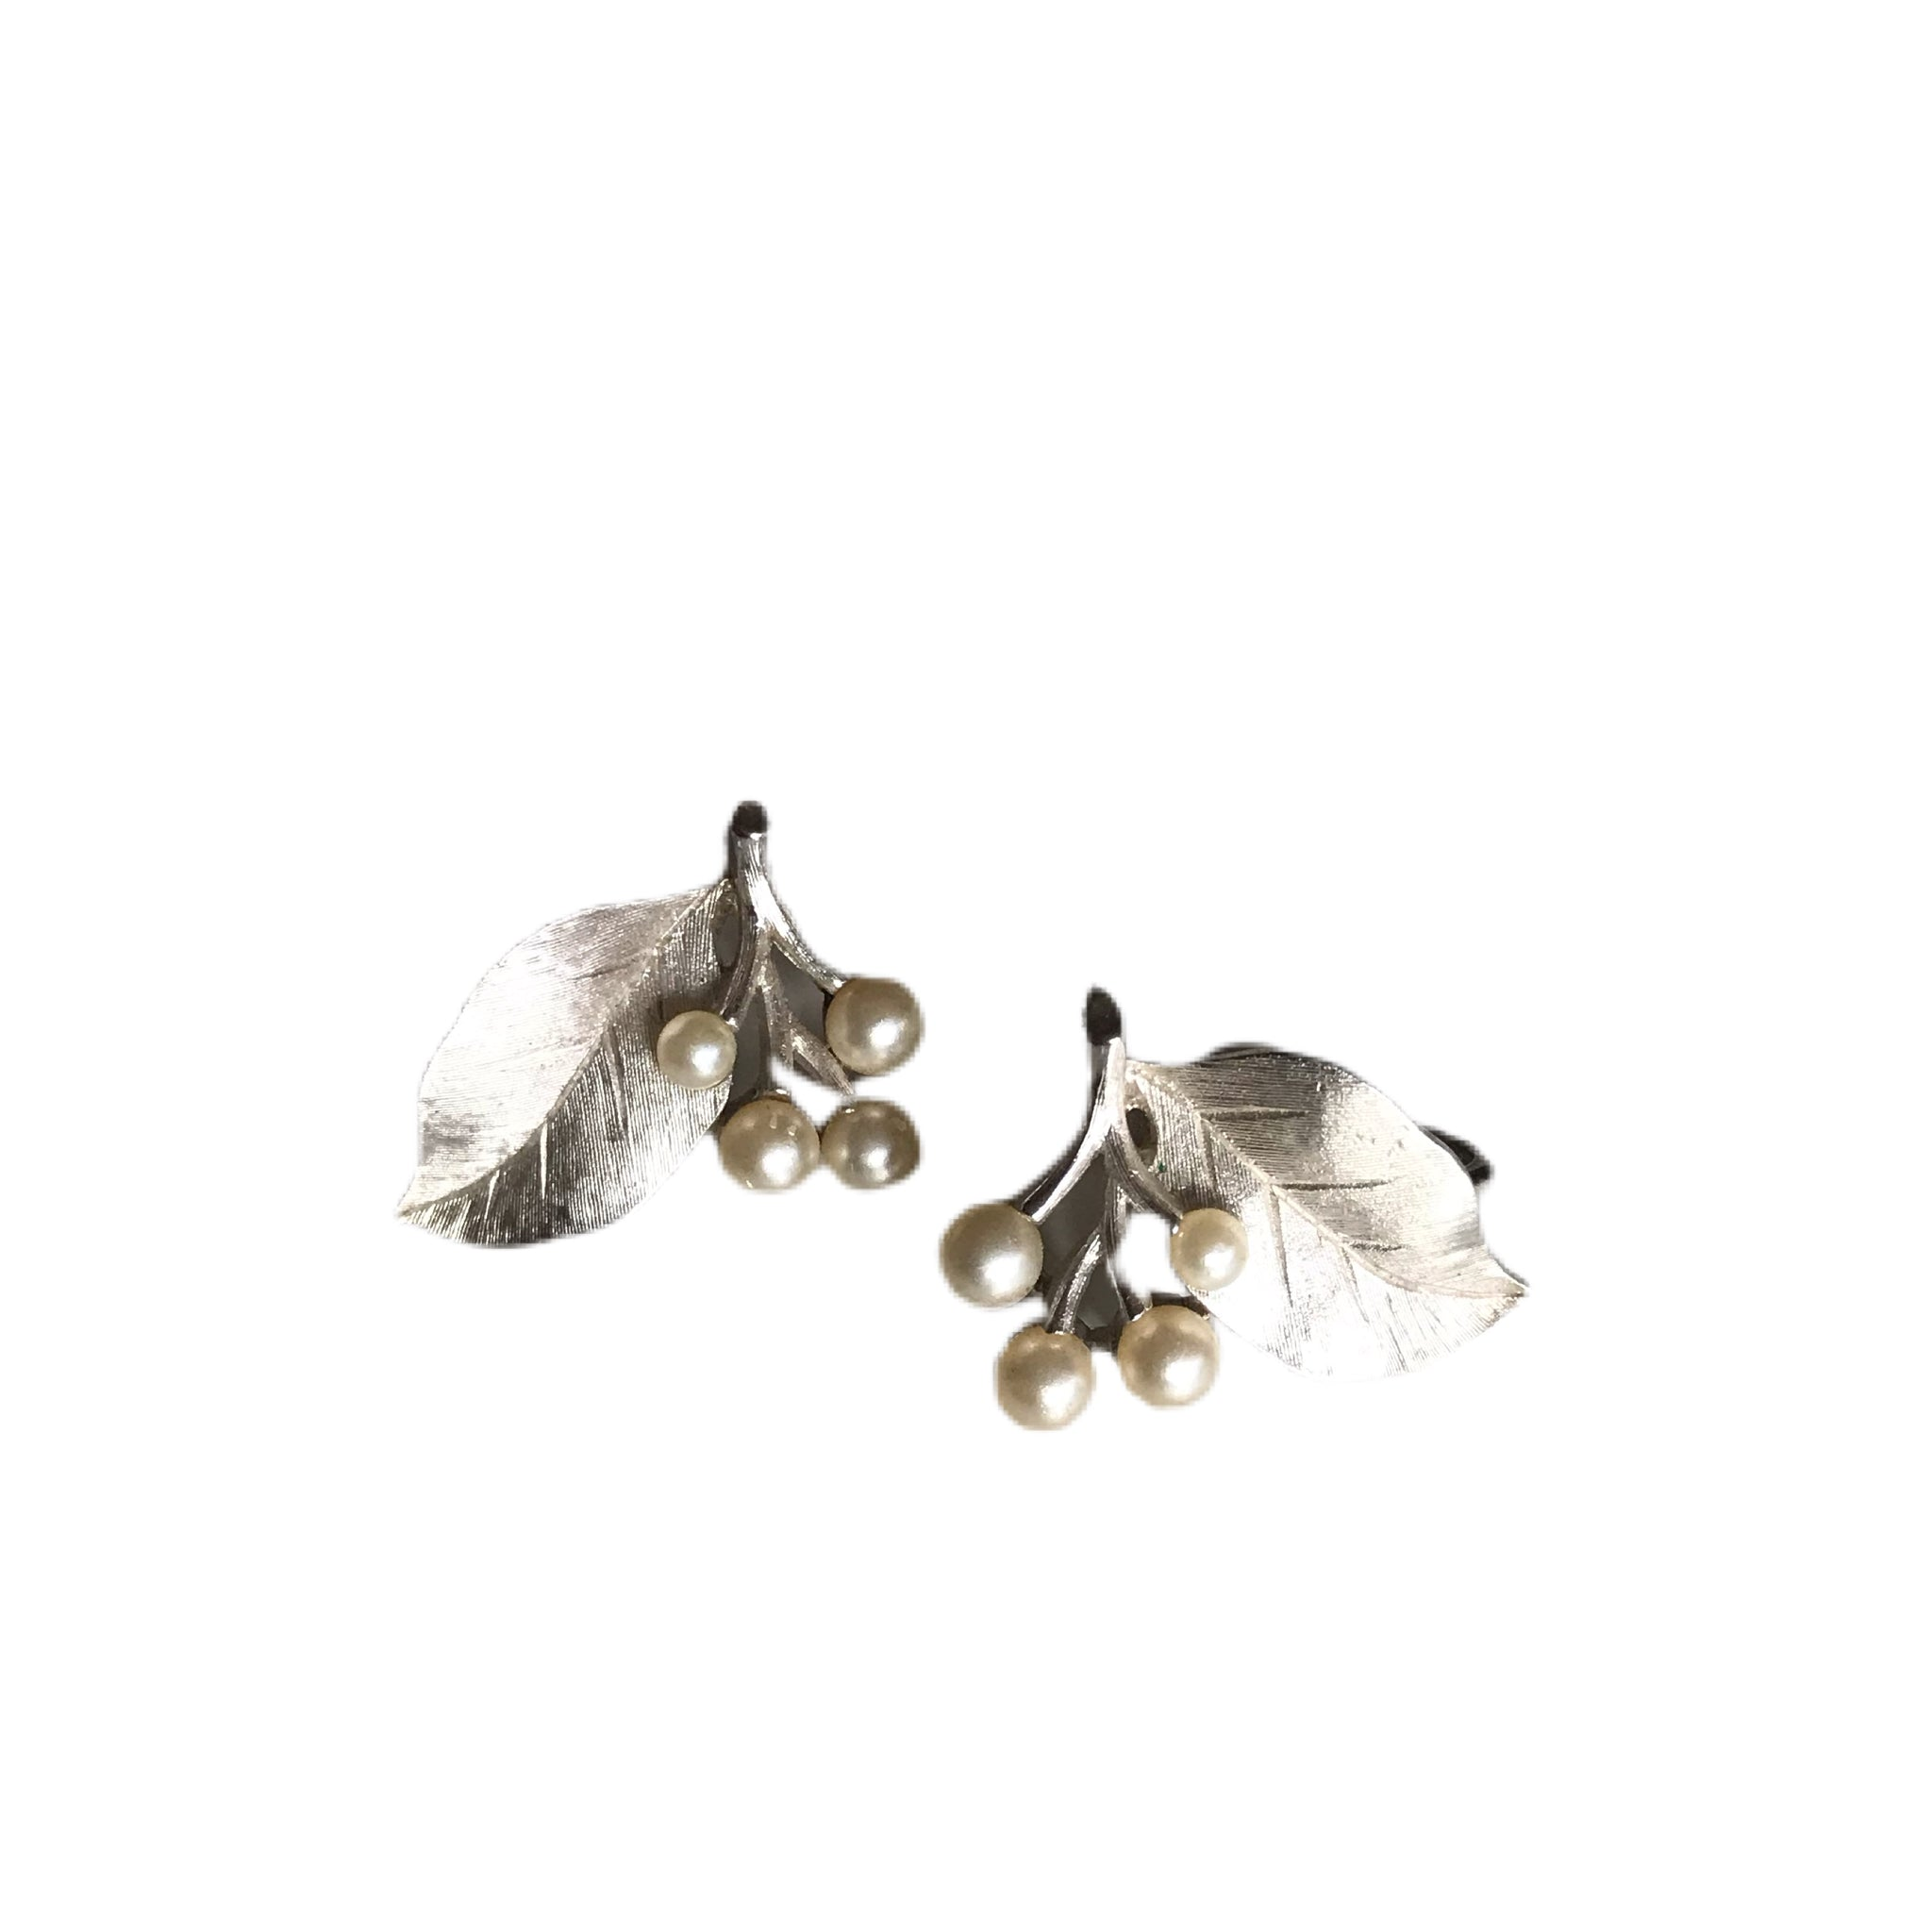 Faux Pearl and Silver Tone Leaf Clip Earrings circa 1940s